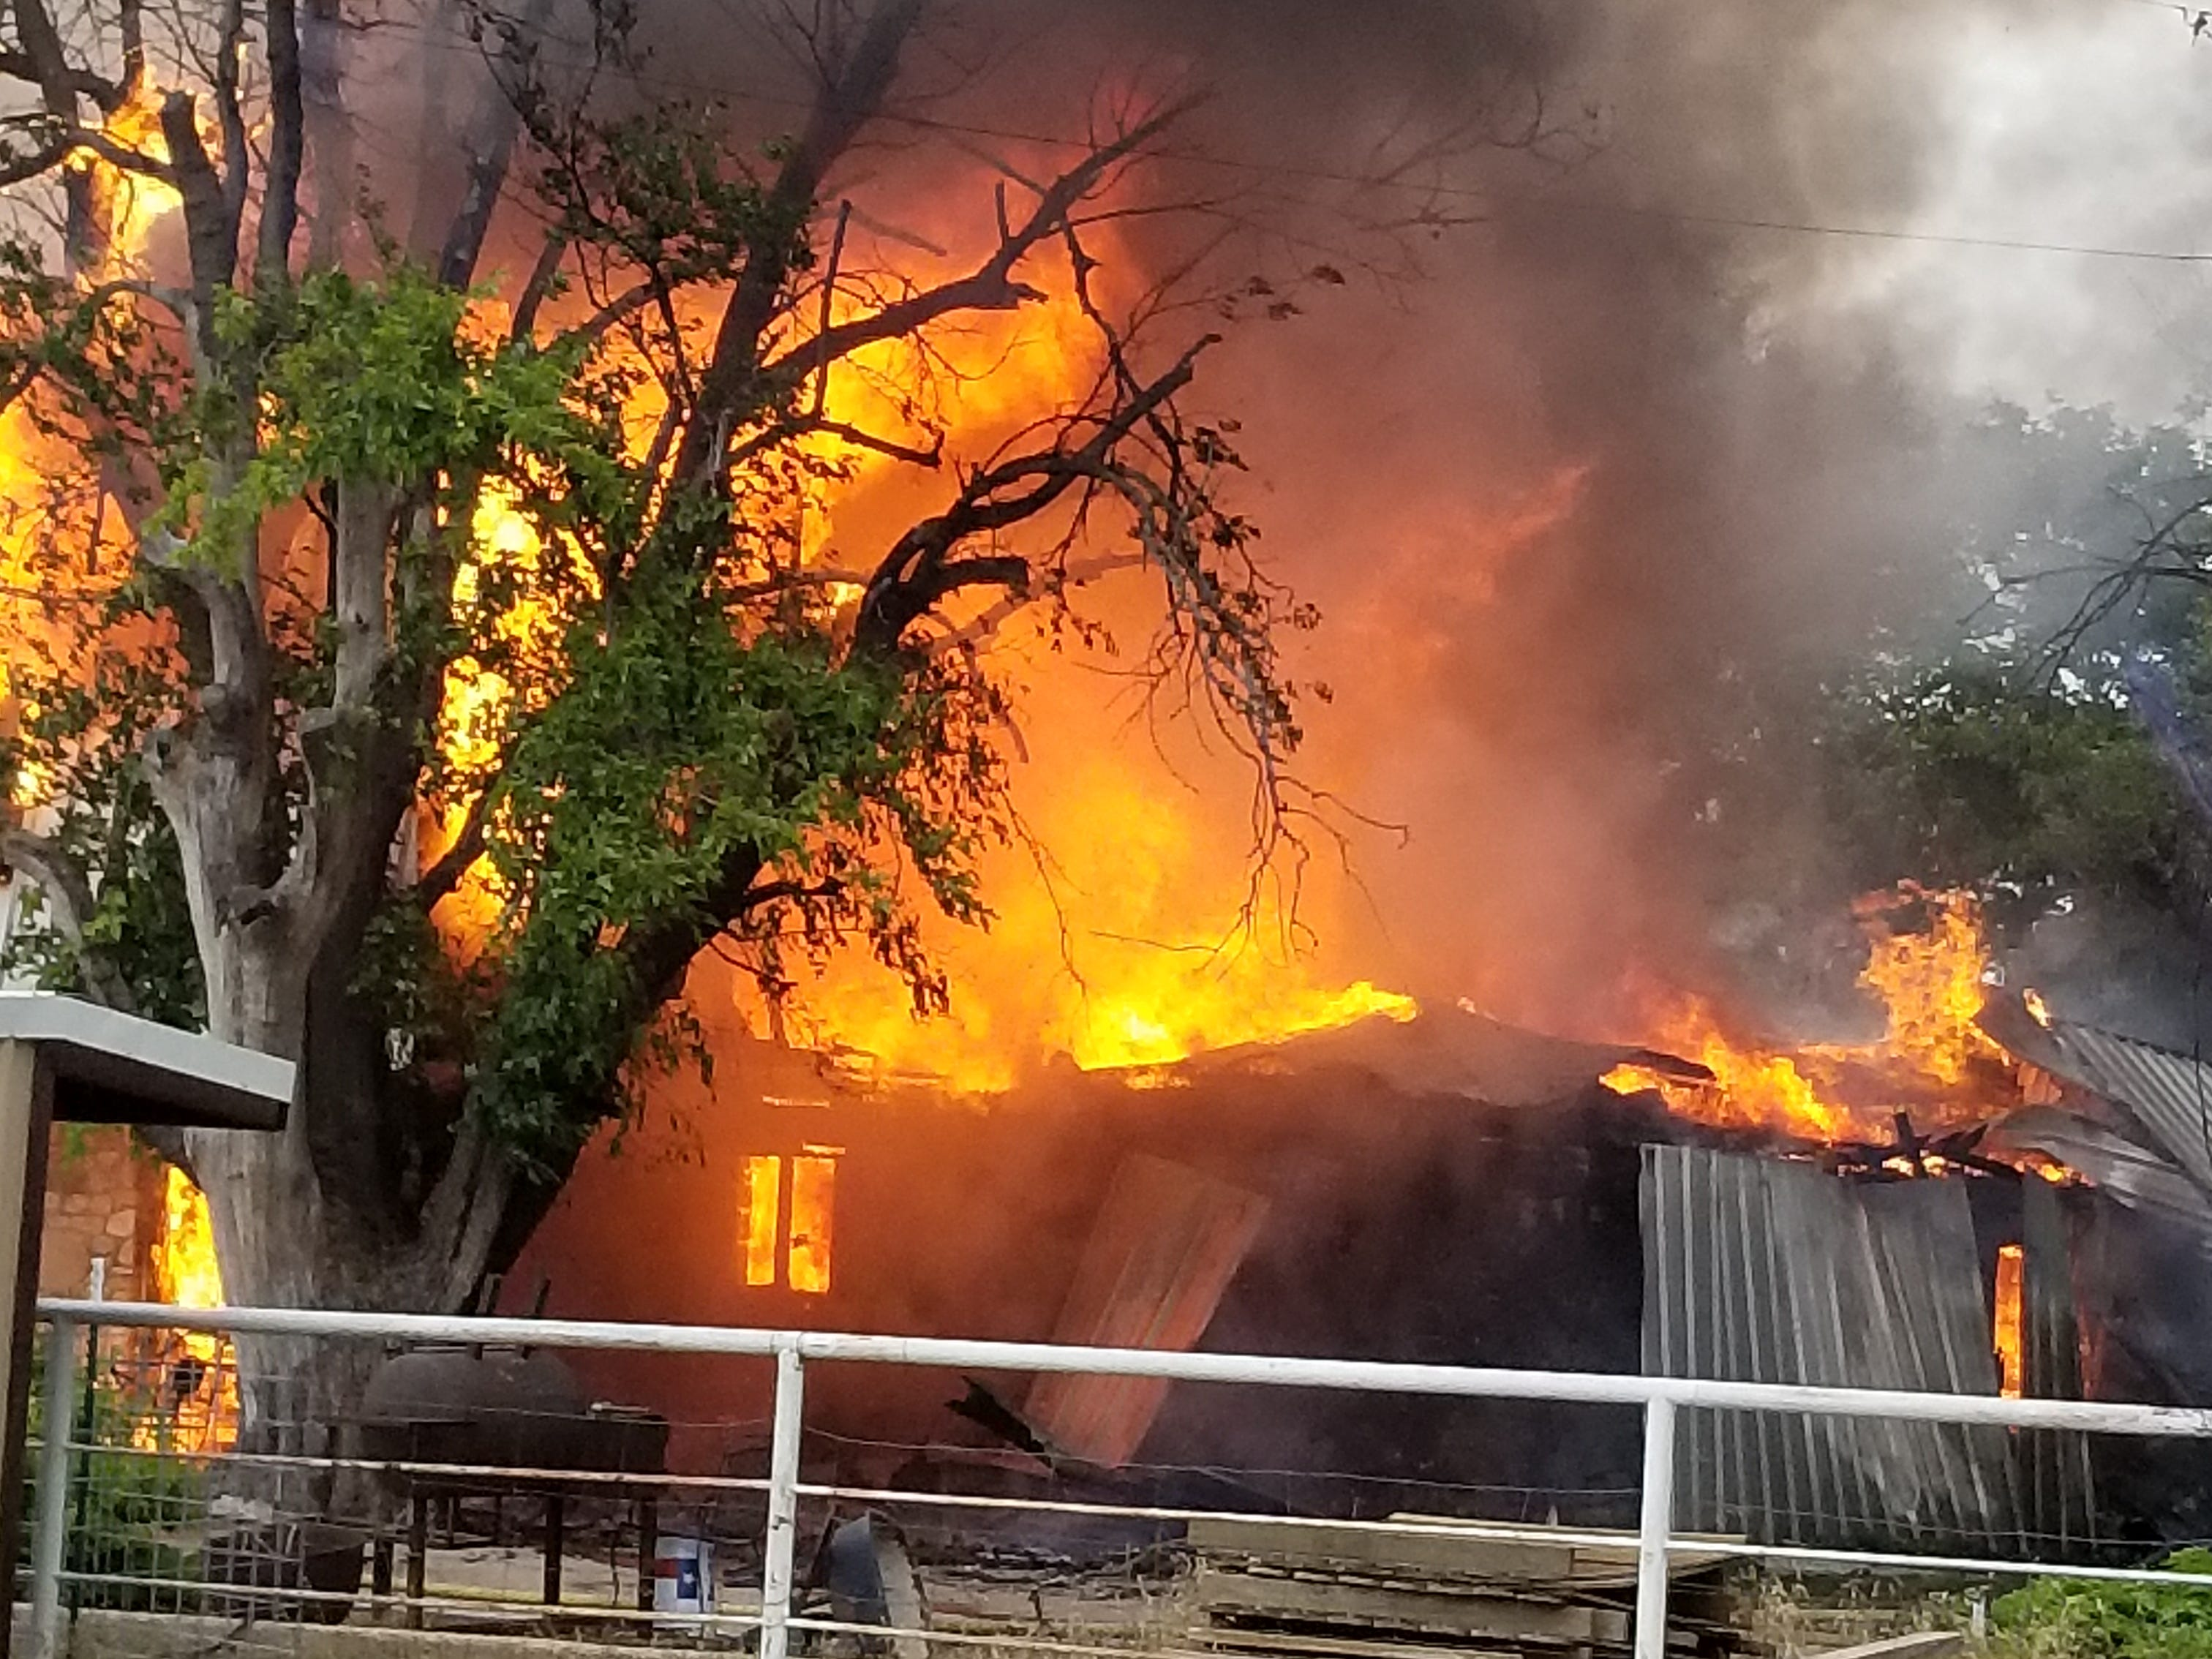 A house at 7465 FM 765 begins to fall after catching on fire Monday, May 13, 2019.